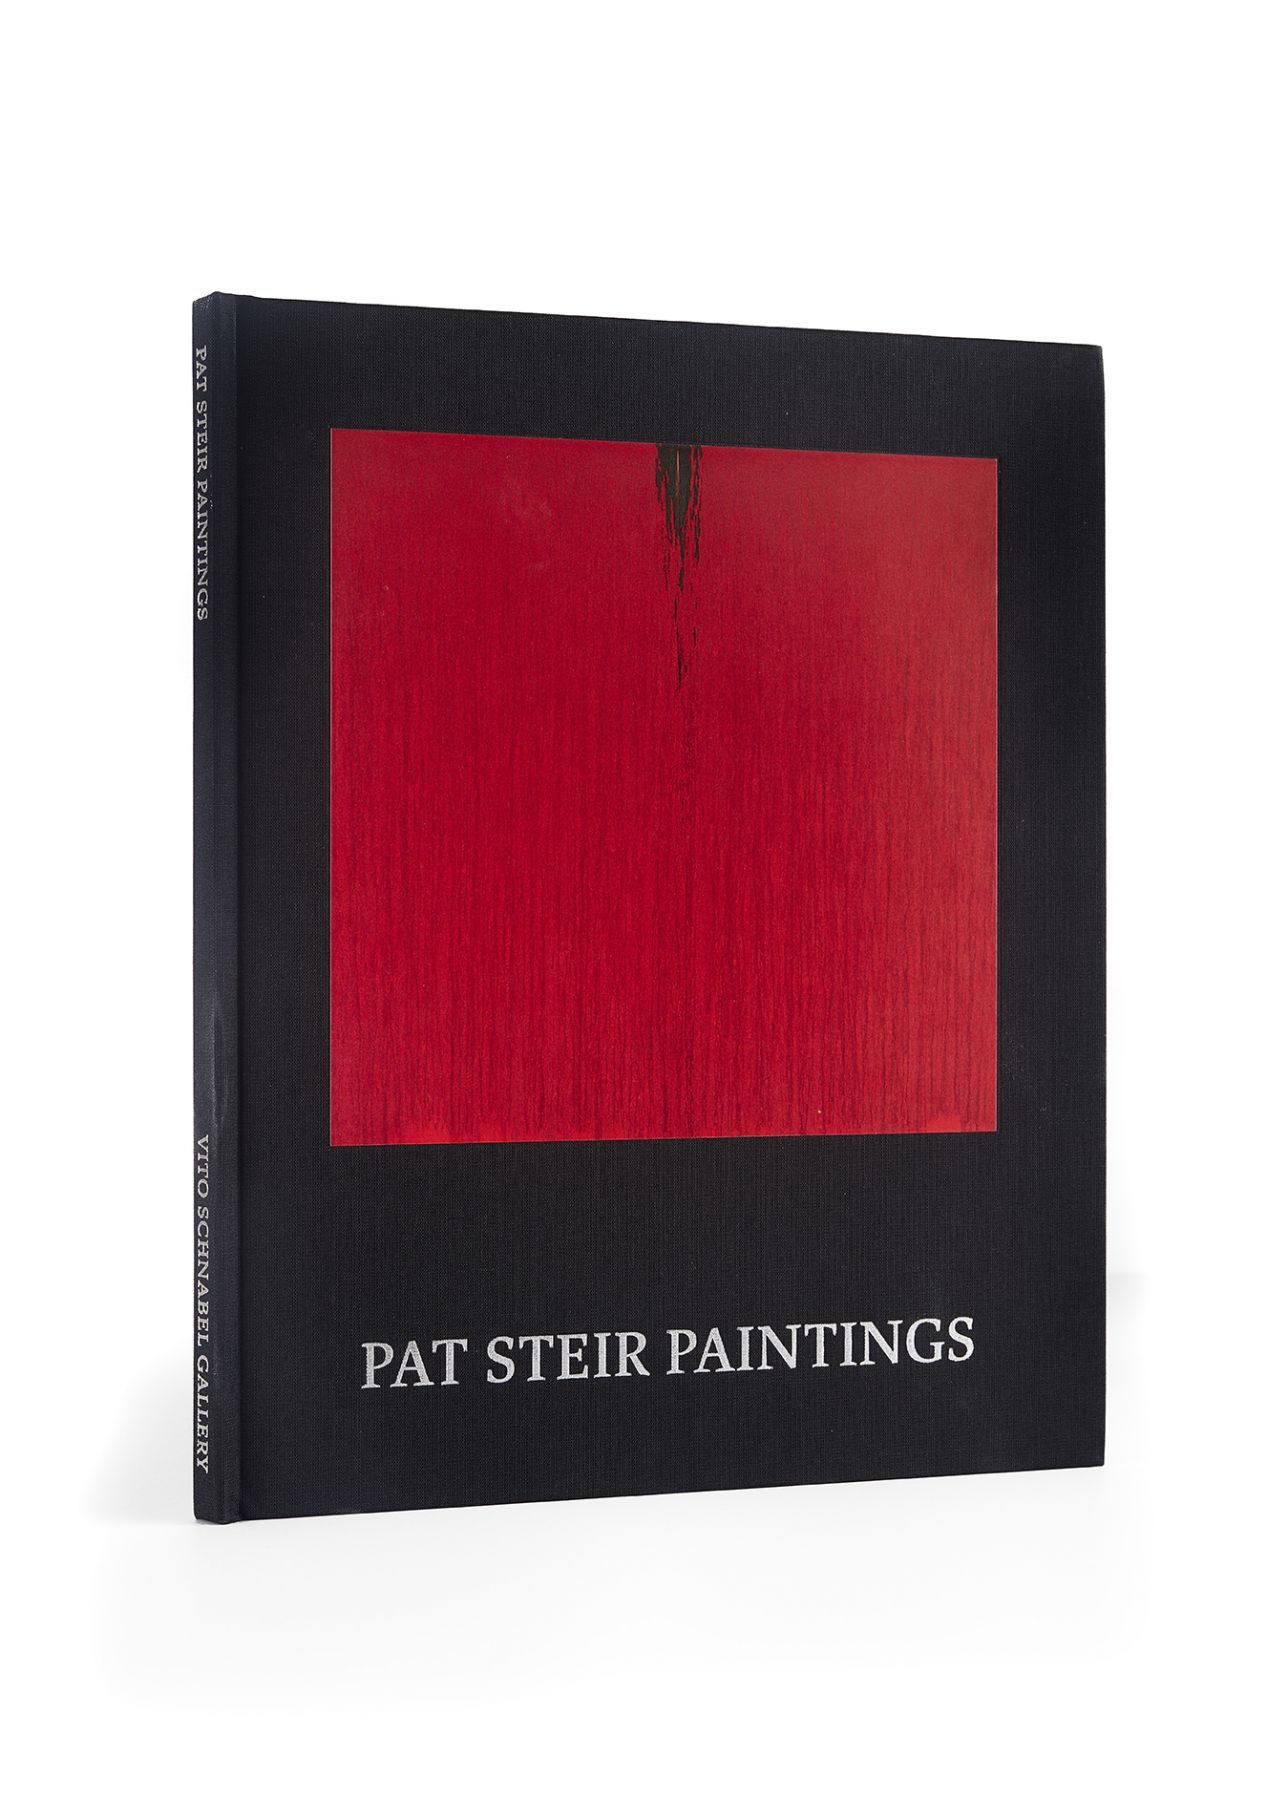 Image of Pat Steir: Paintings Catalogue side